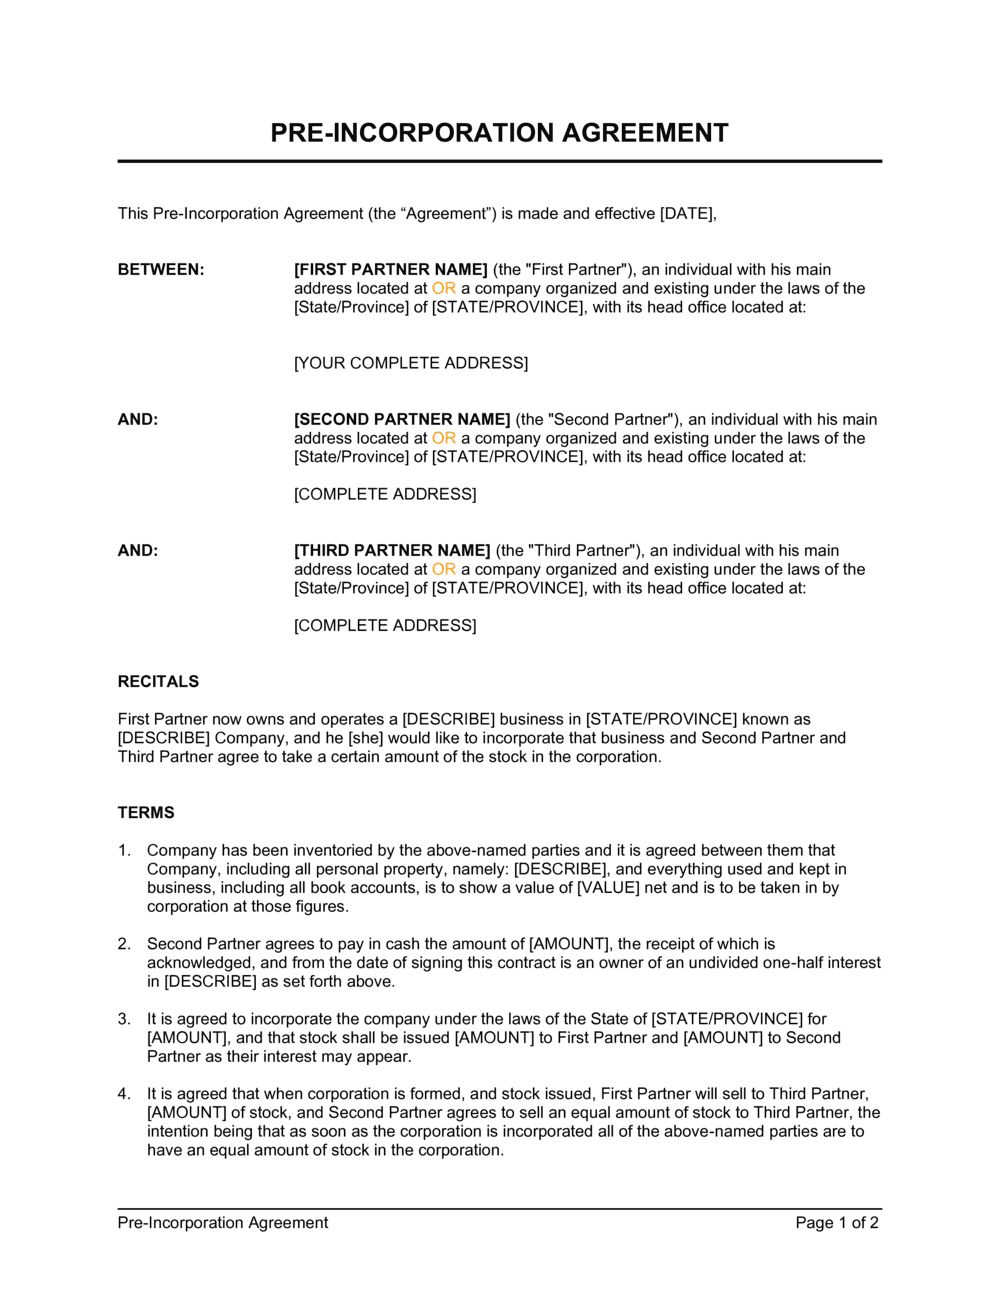 Business-in-a-Box's Pre-Incorporation Agreement Template